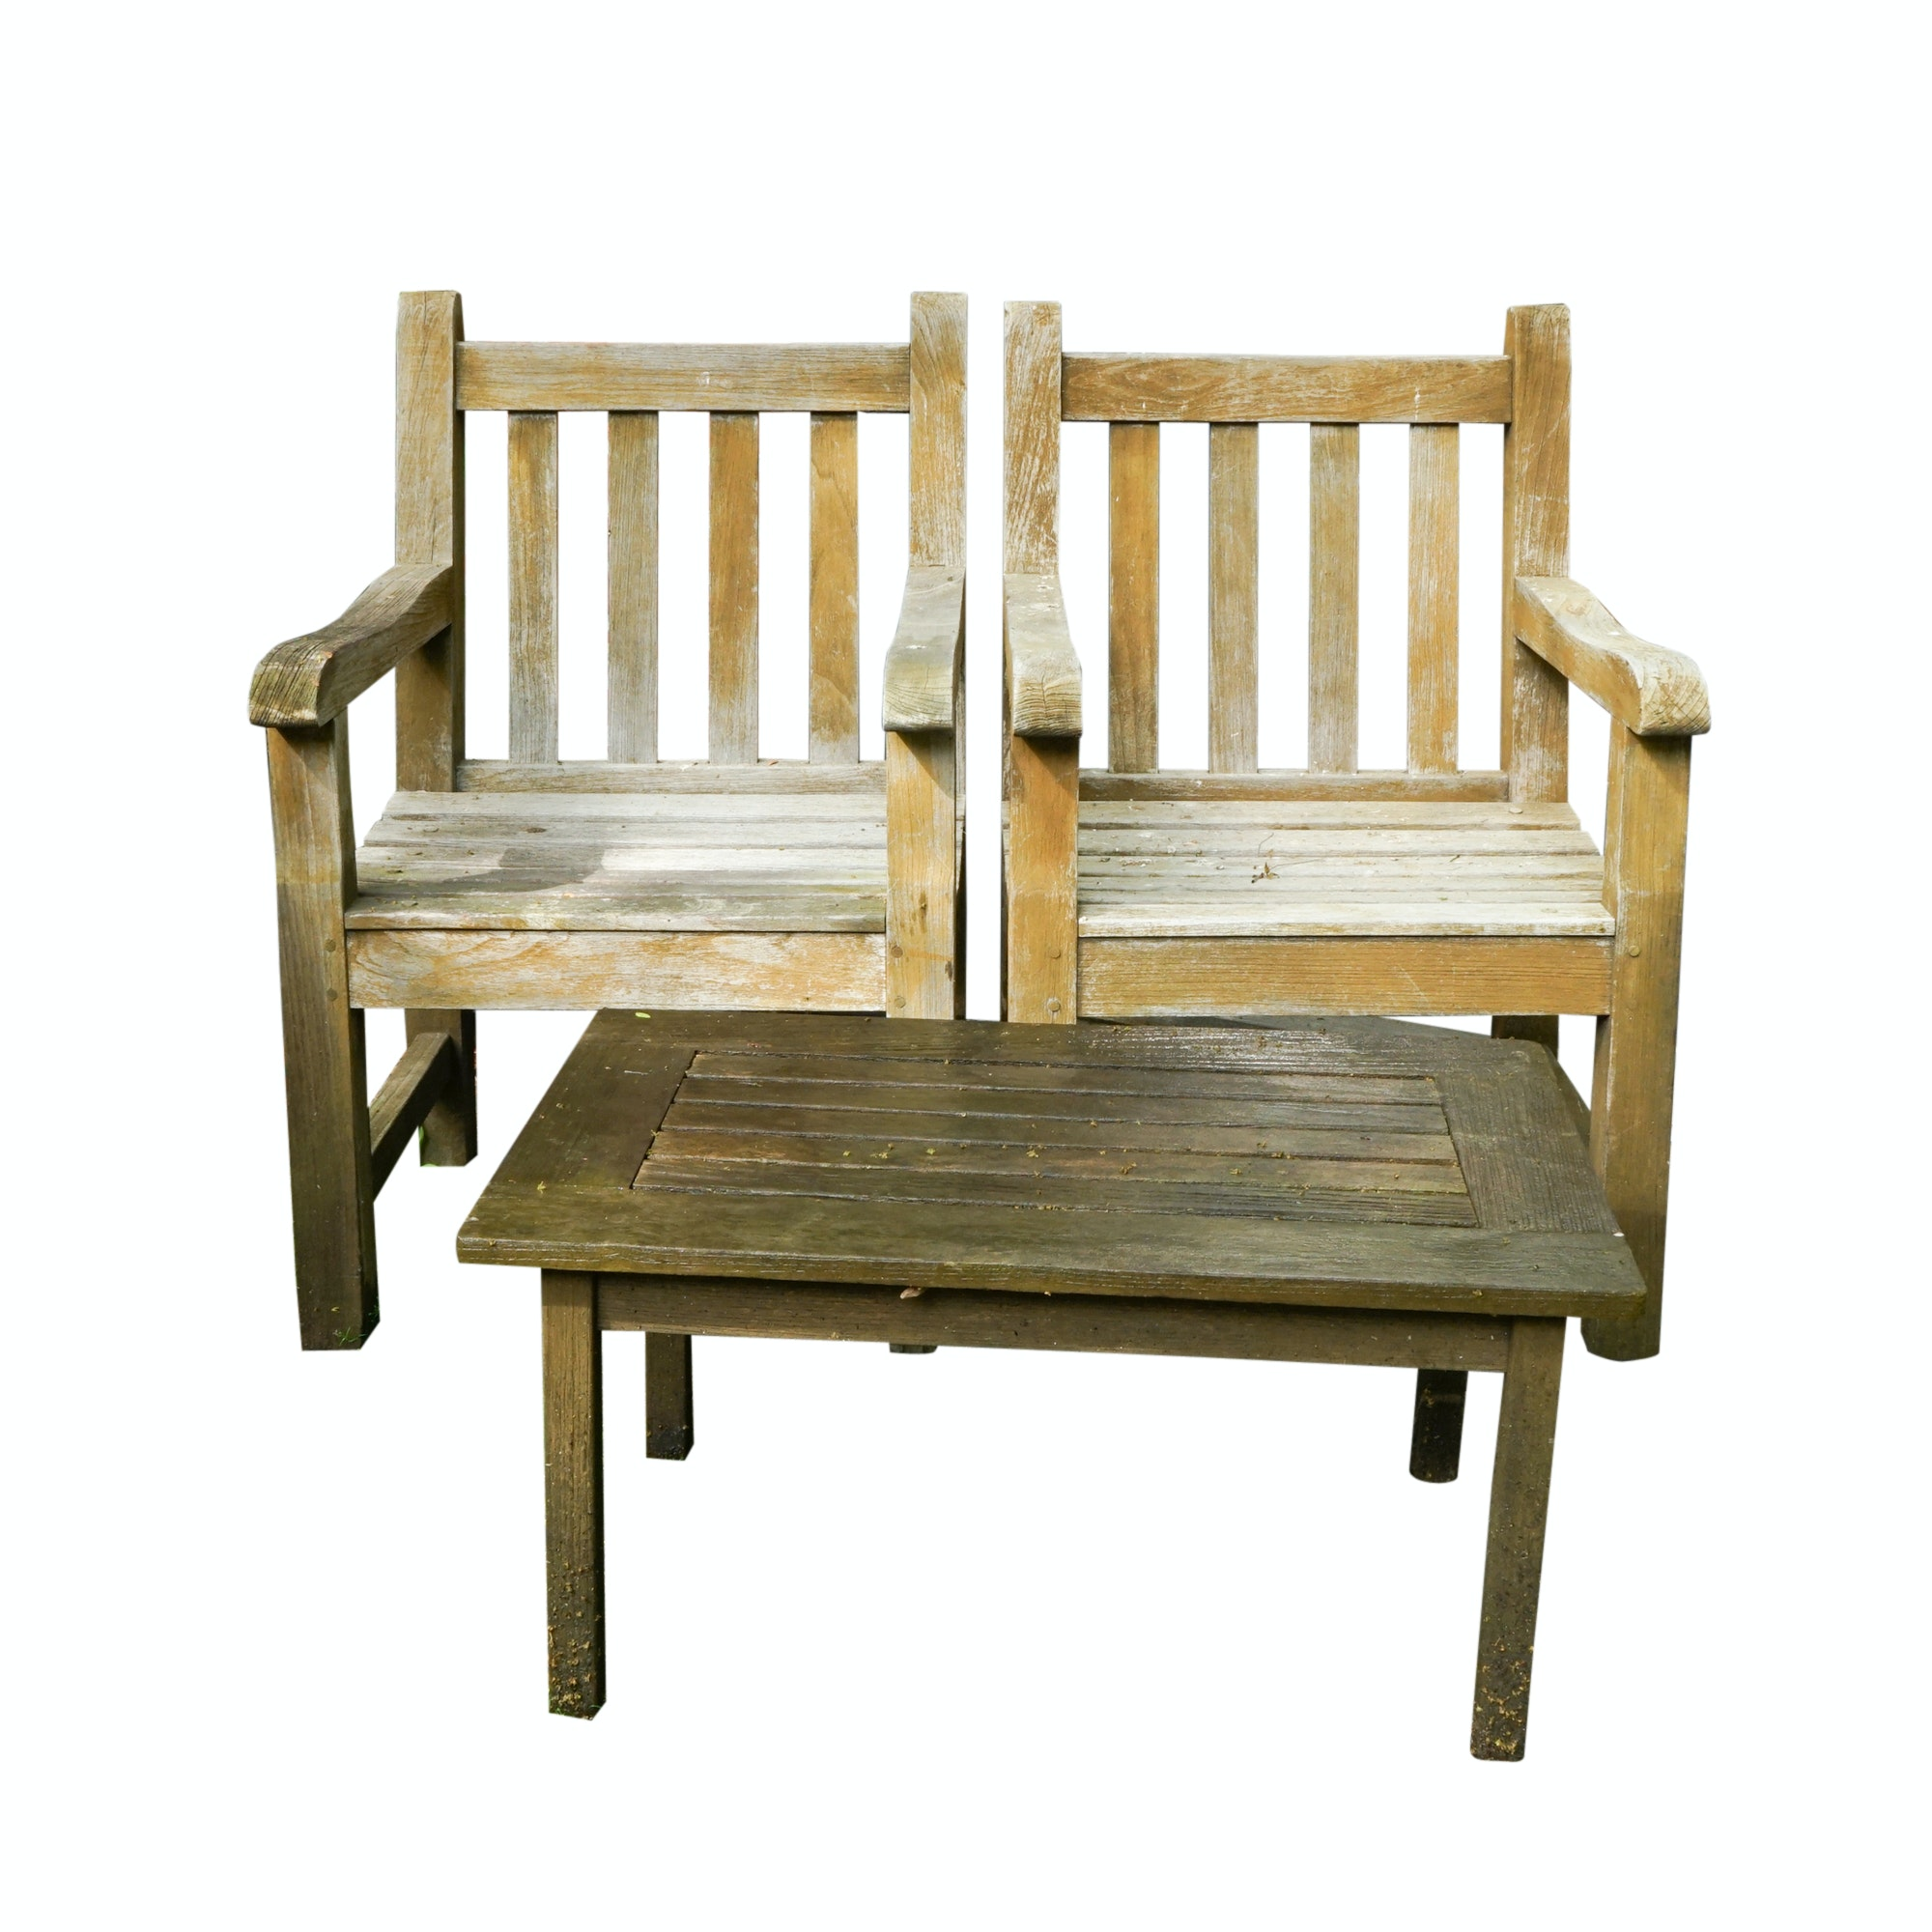 Wooden Patio Chairs with Side Table